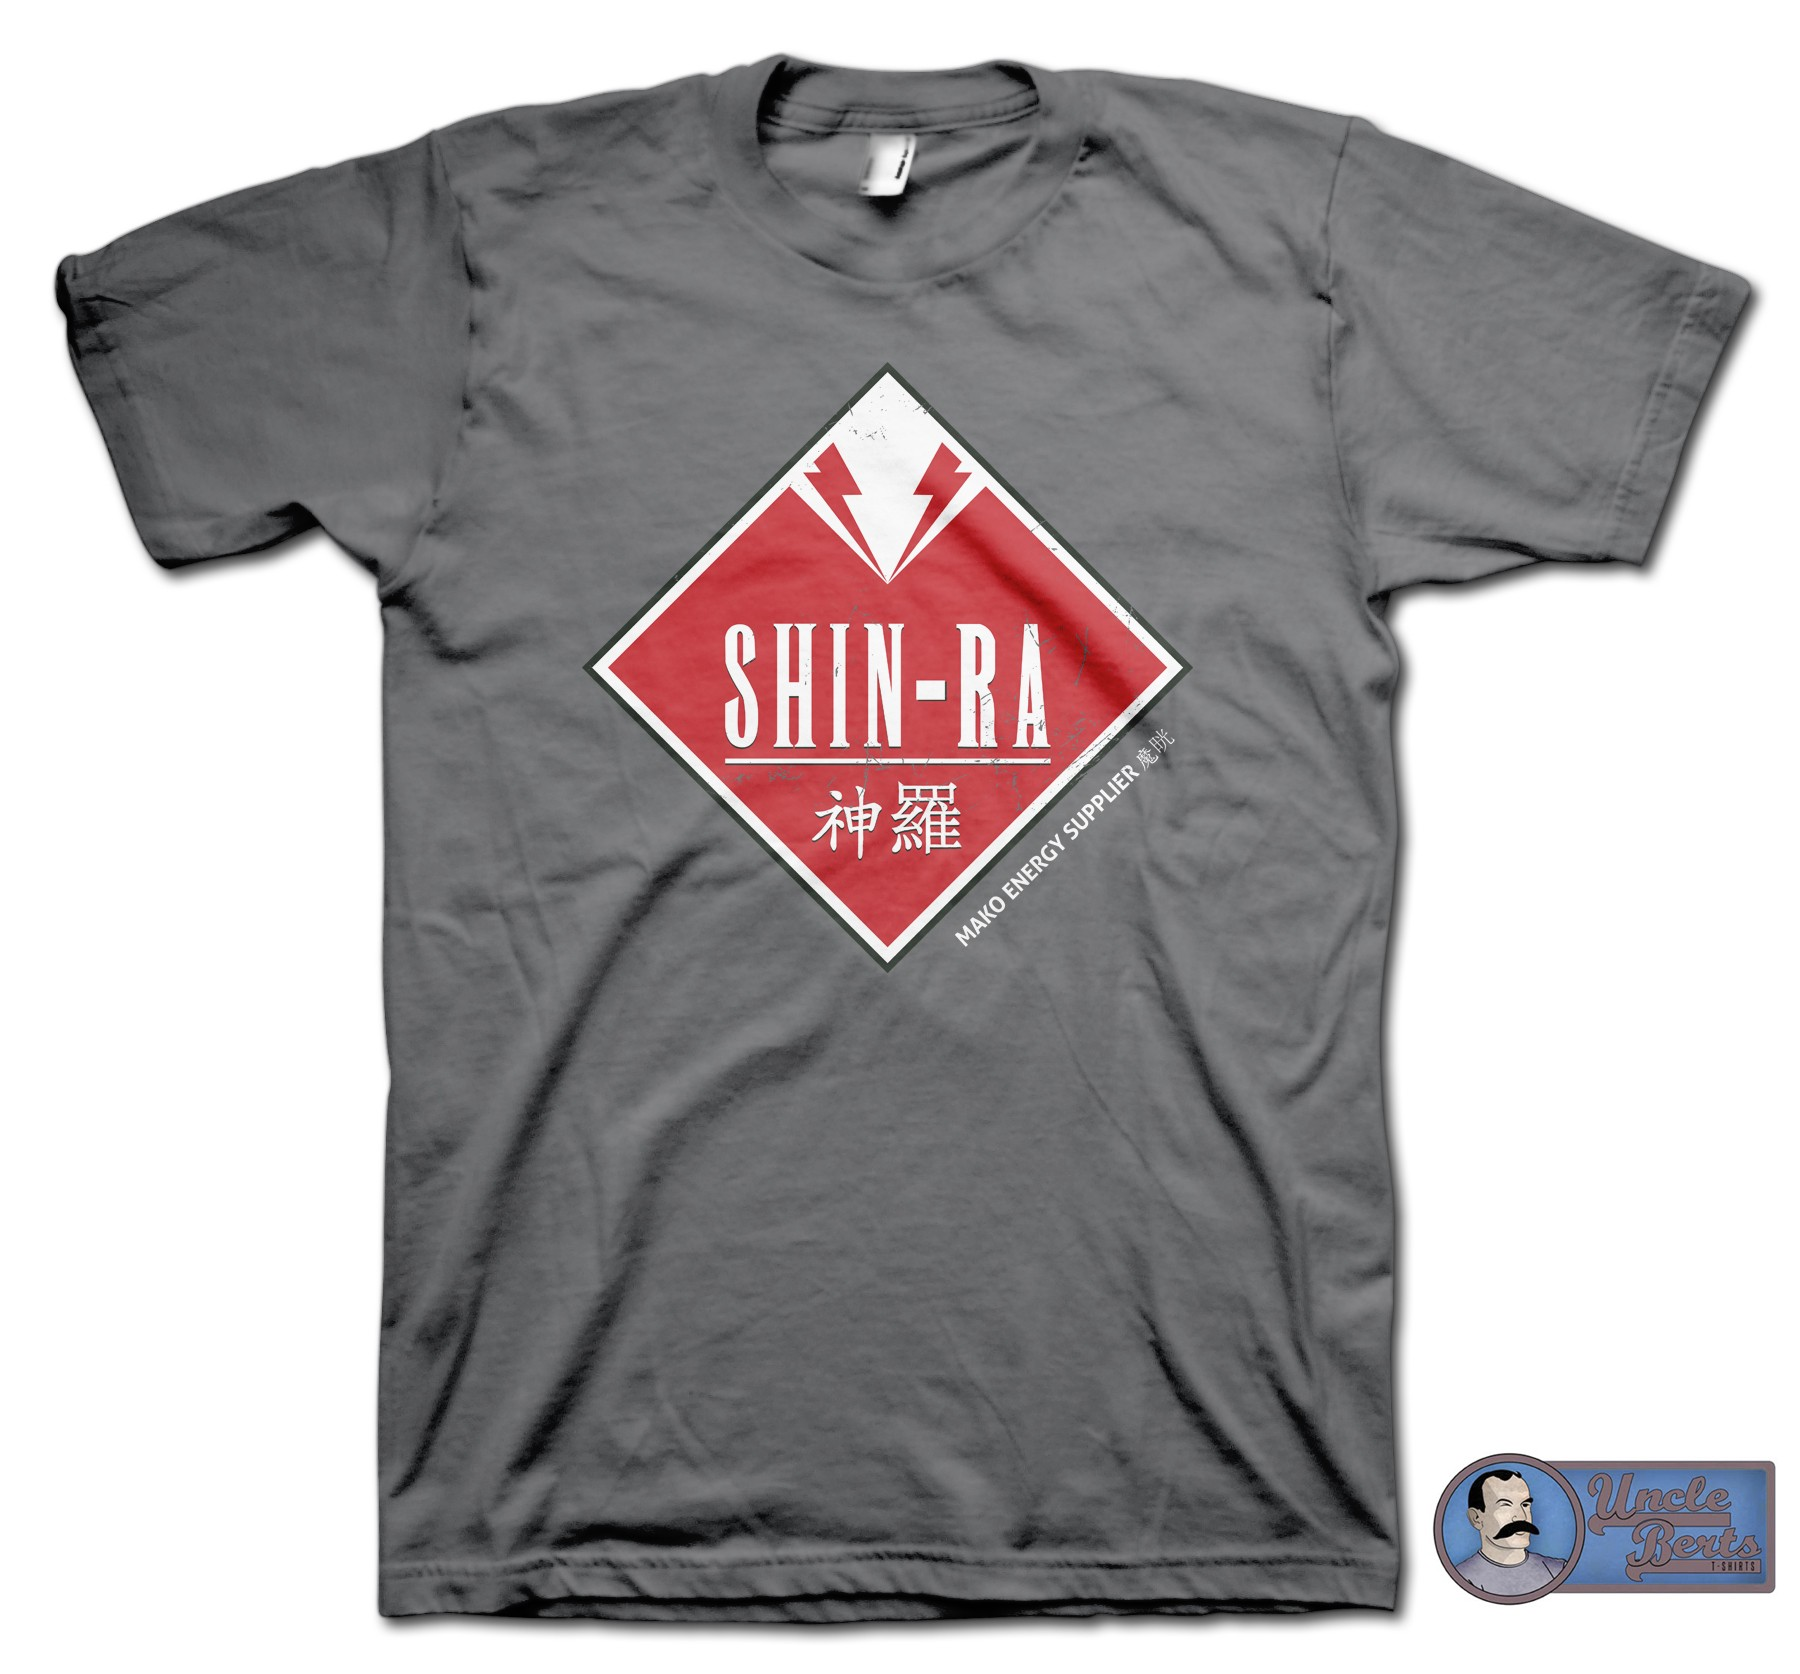 Shin-Ra T-Shirt - inspired by Final Fantasy VII